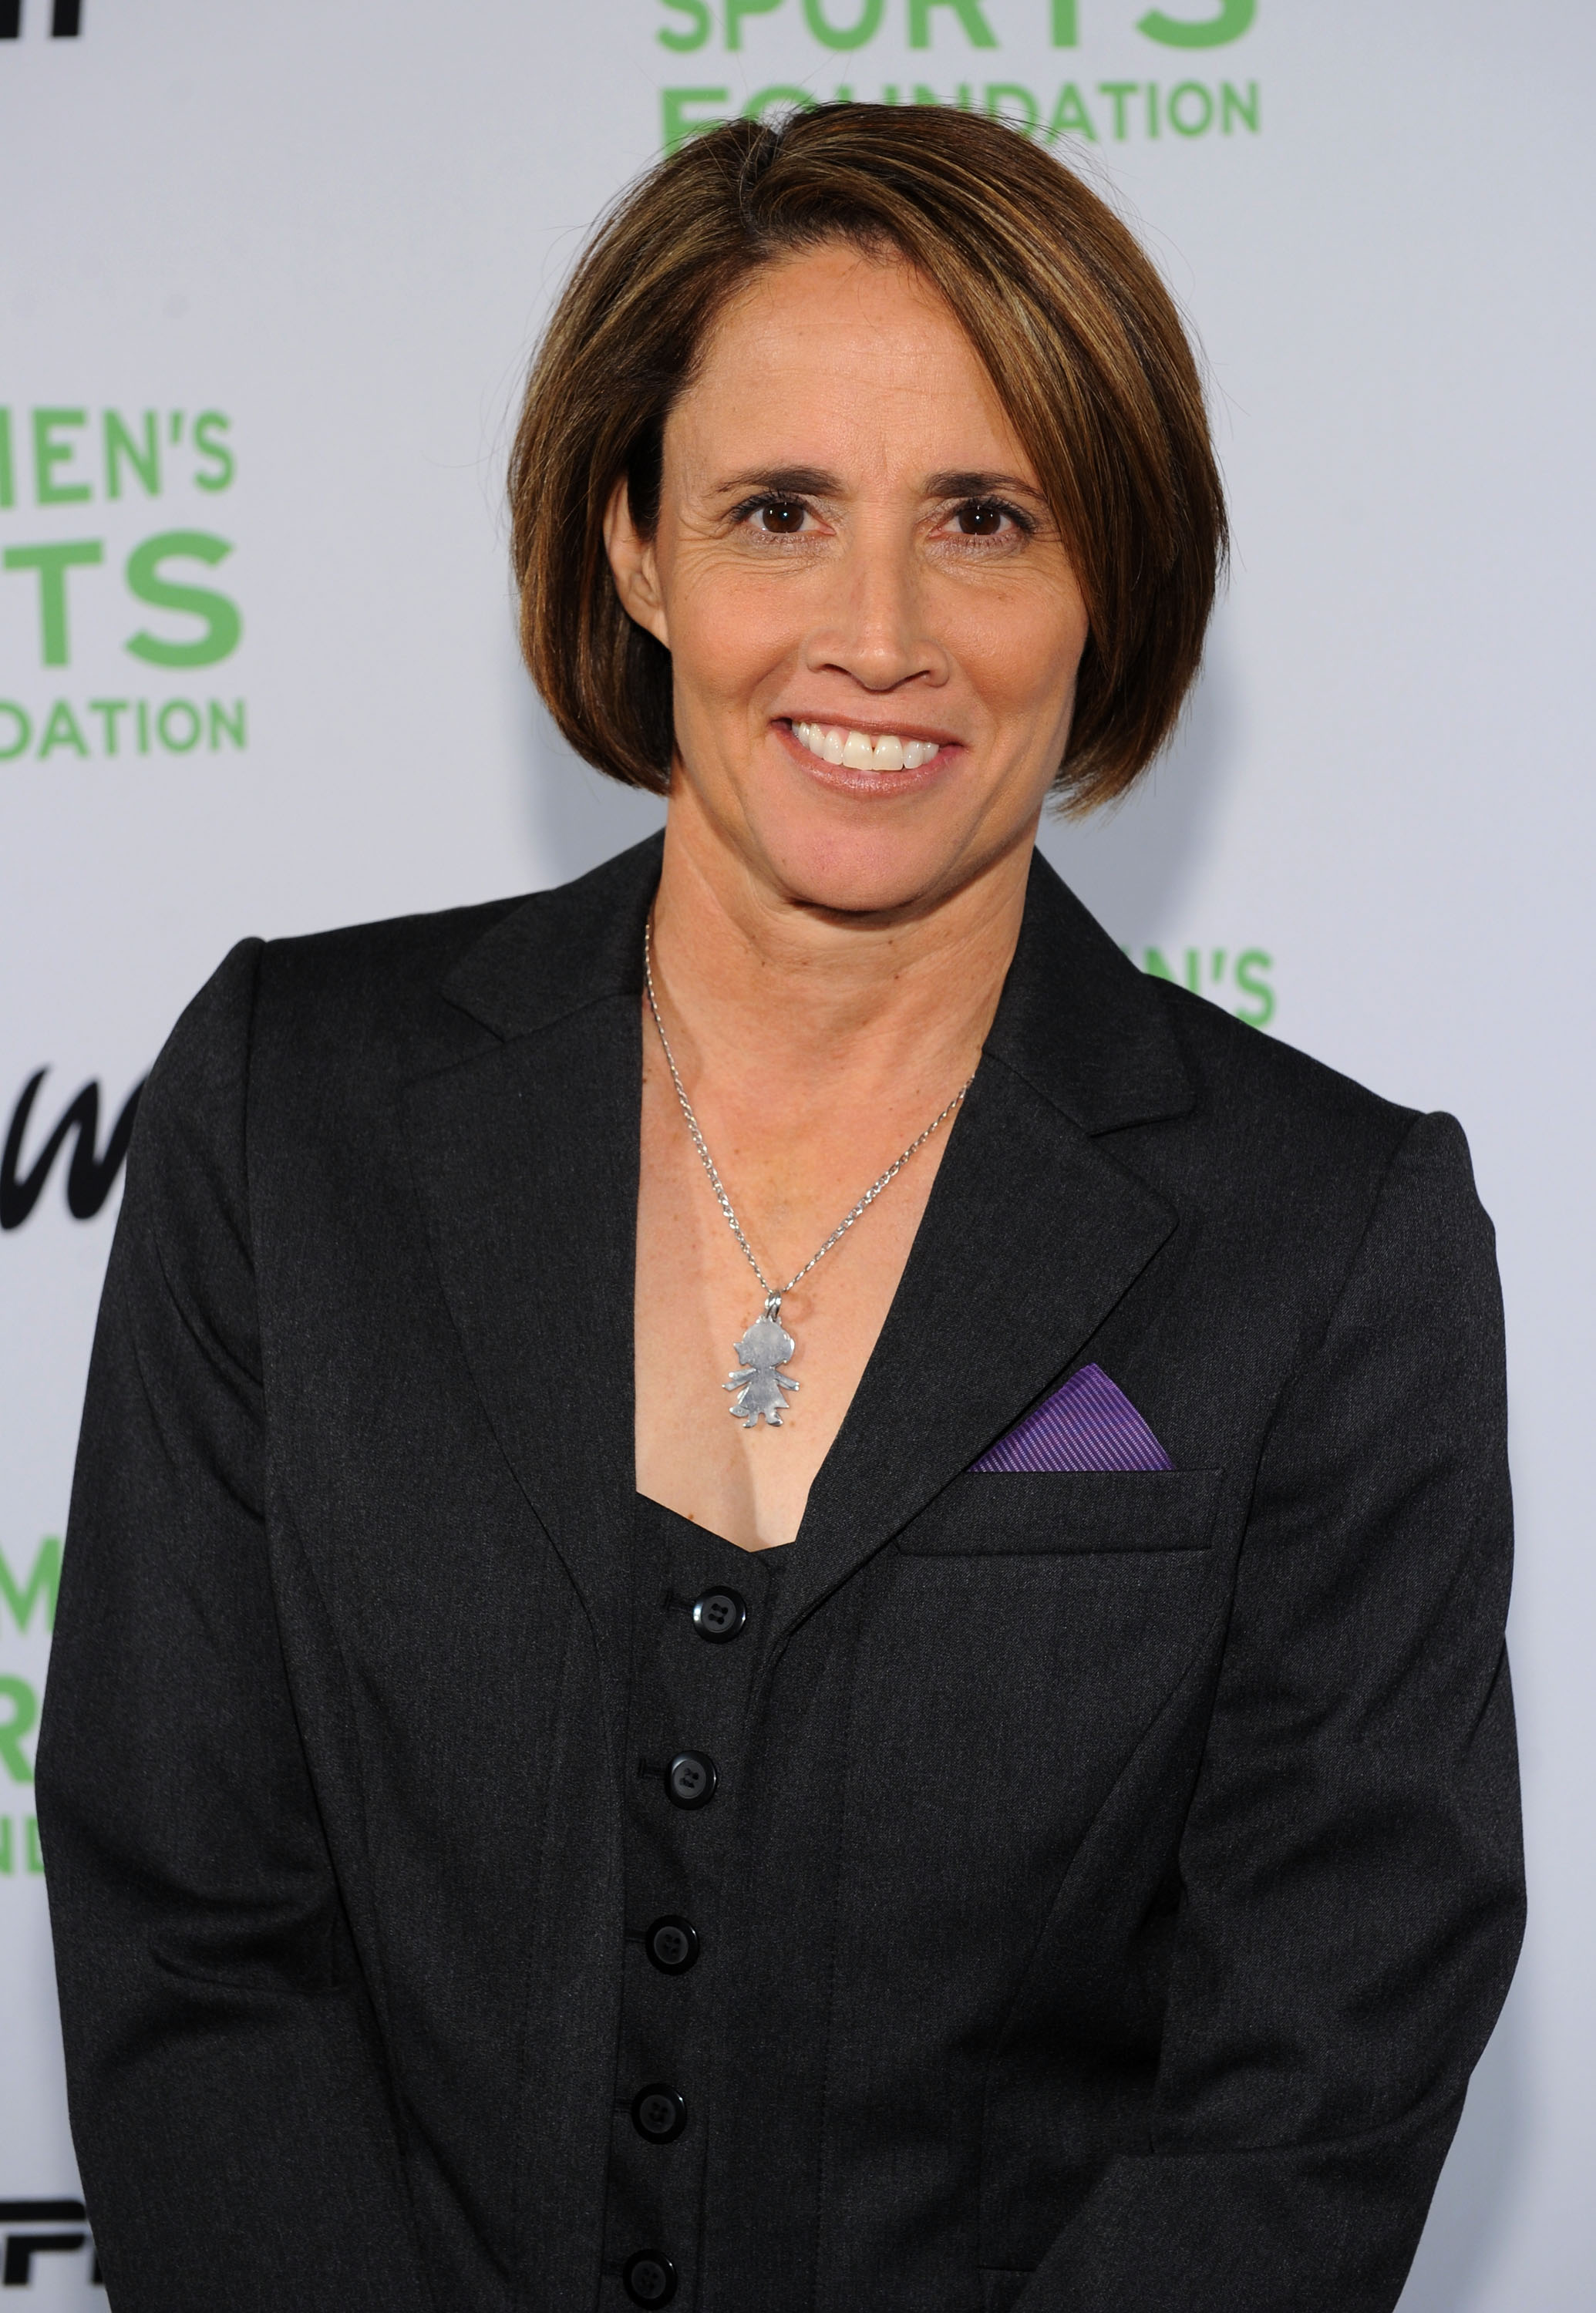 NEW YORK - OCTOBER 12:  Sports journalist and host Mary Carillo attends the 31st Annual Salute to Women in Sports gala at The Waldorf-Astoria on October 12, 2010 in New York City.  (Photo by Bryan Bedder/Getty Images)